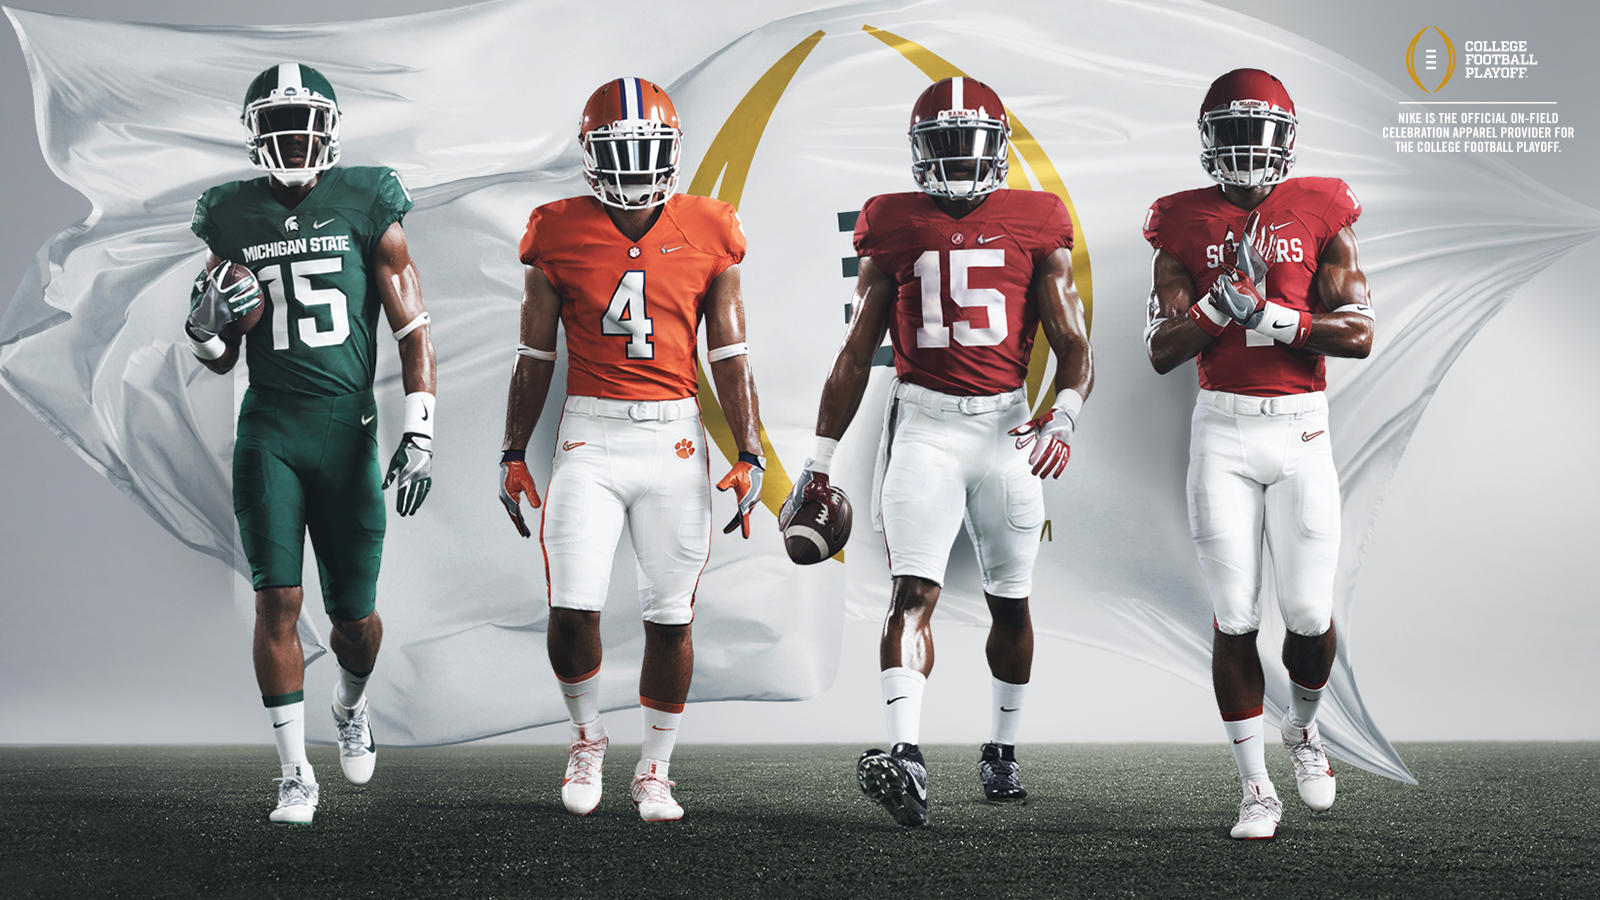 Check Out The College Football Playoff Uniforms Page 5